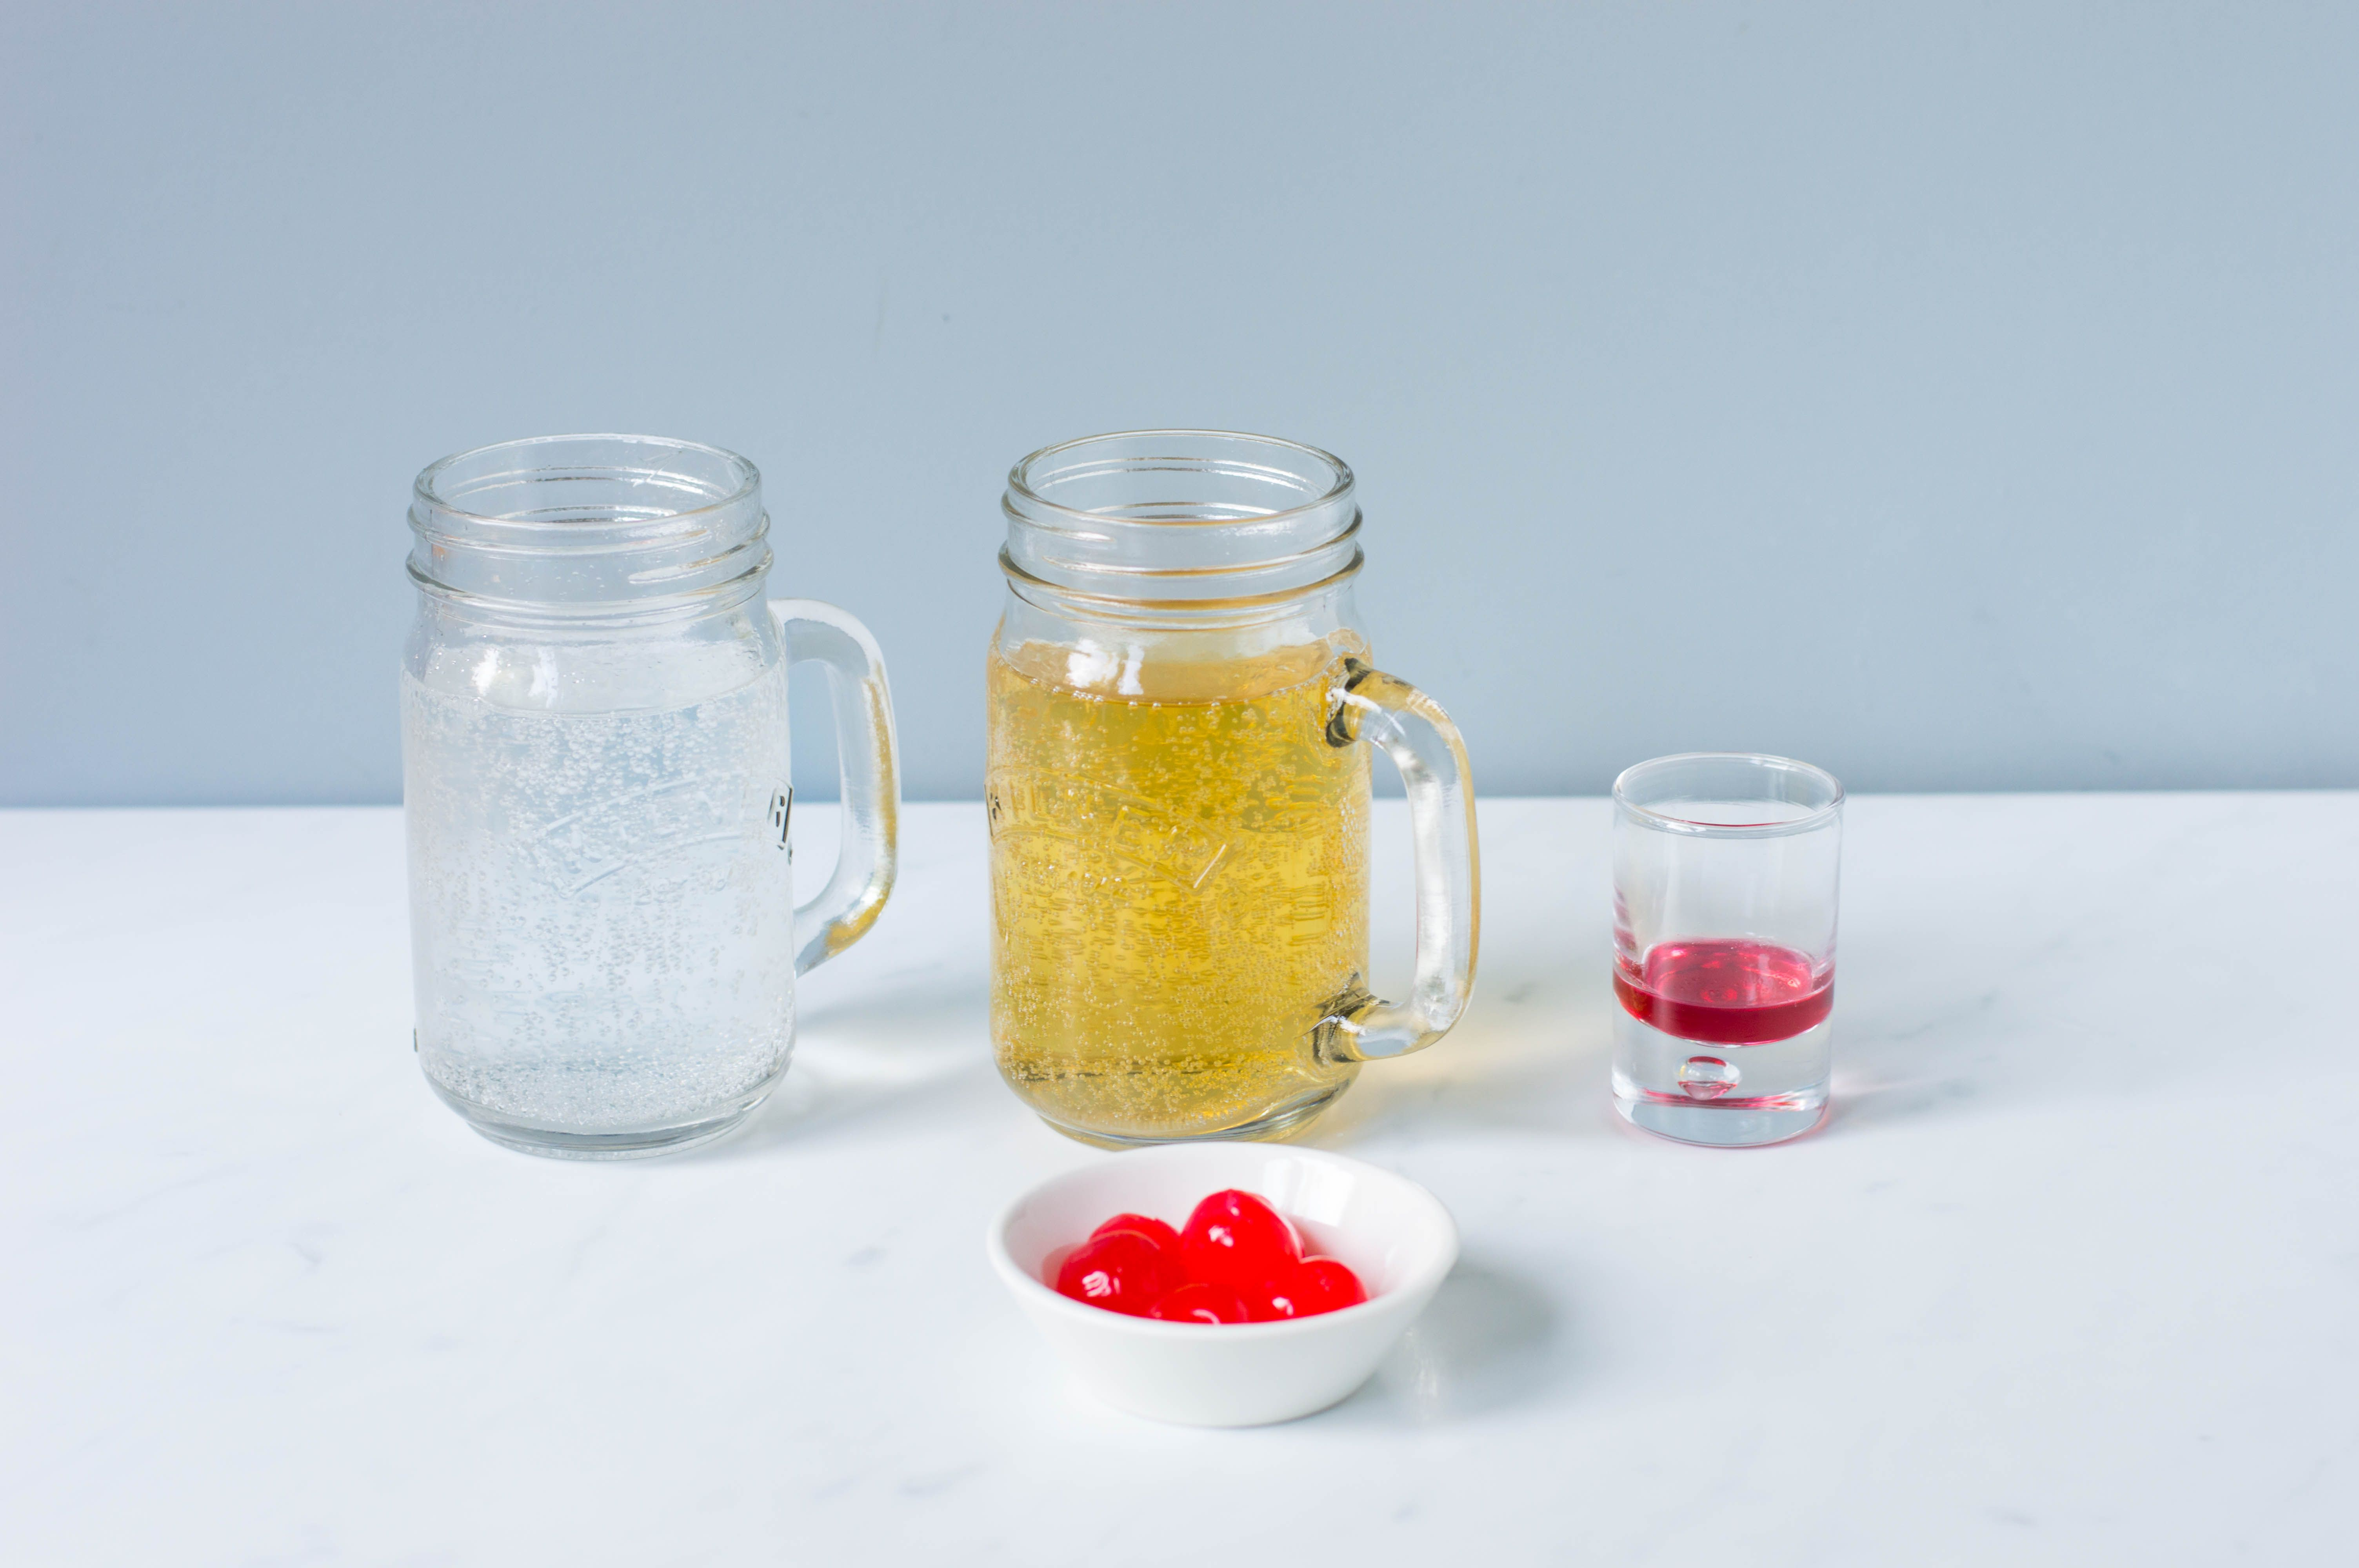 Ingredients for making a Shirley Temple drink